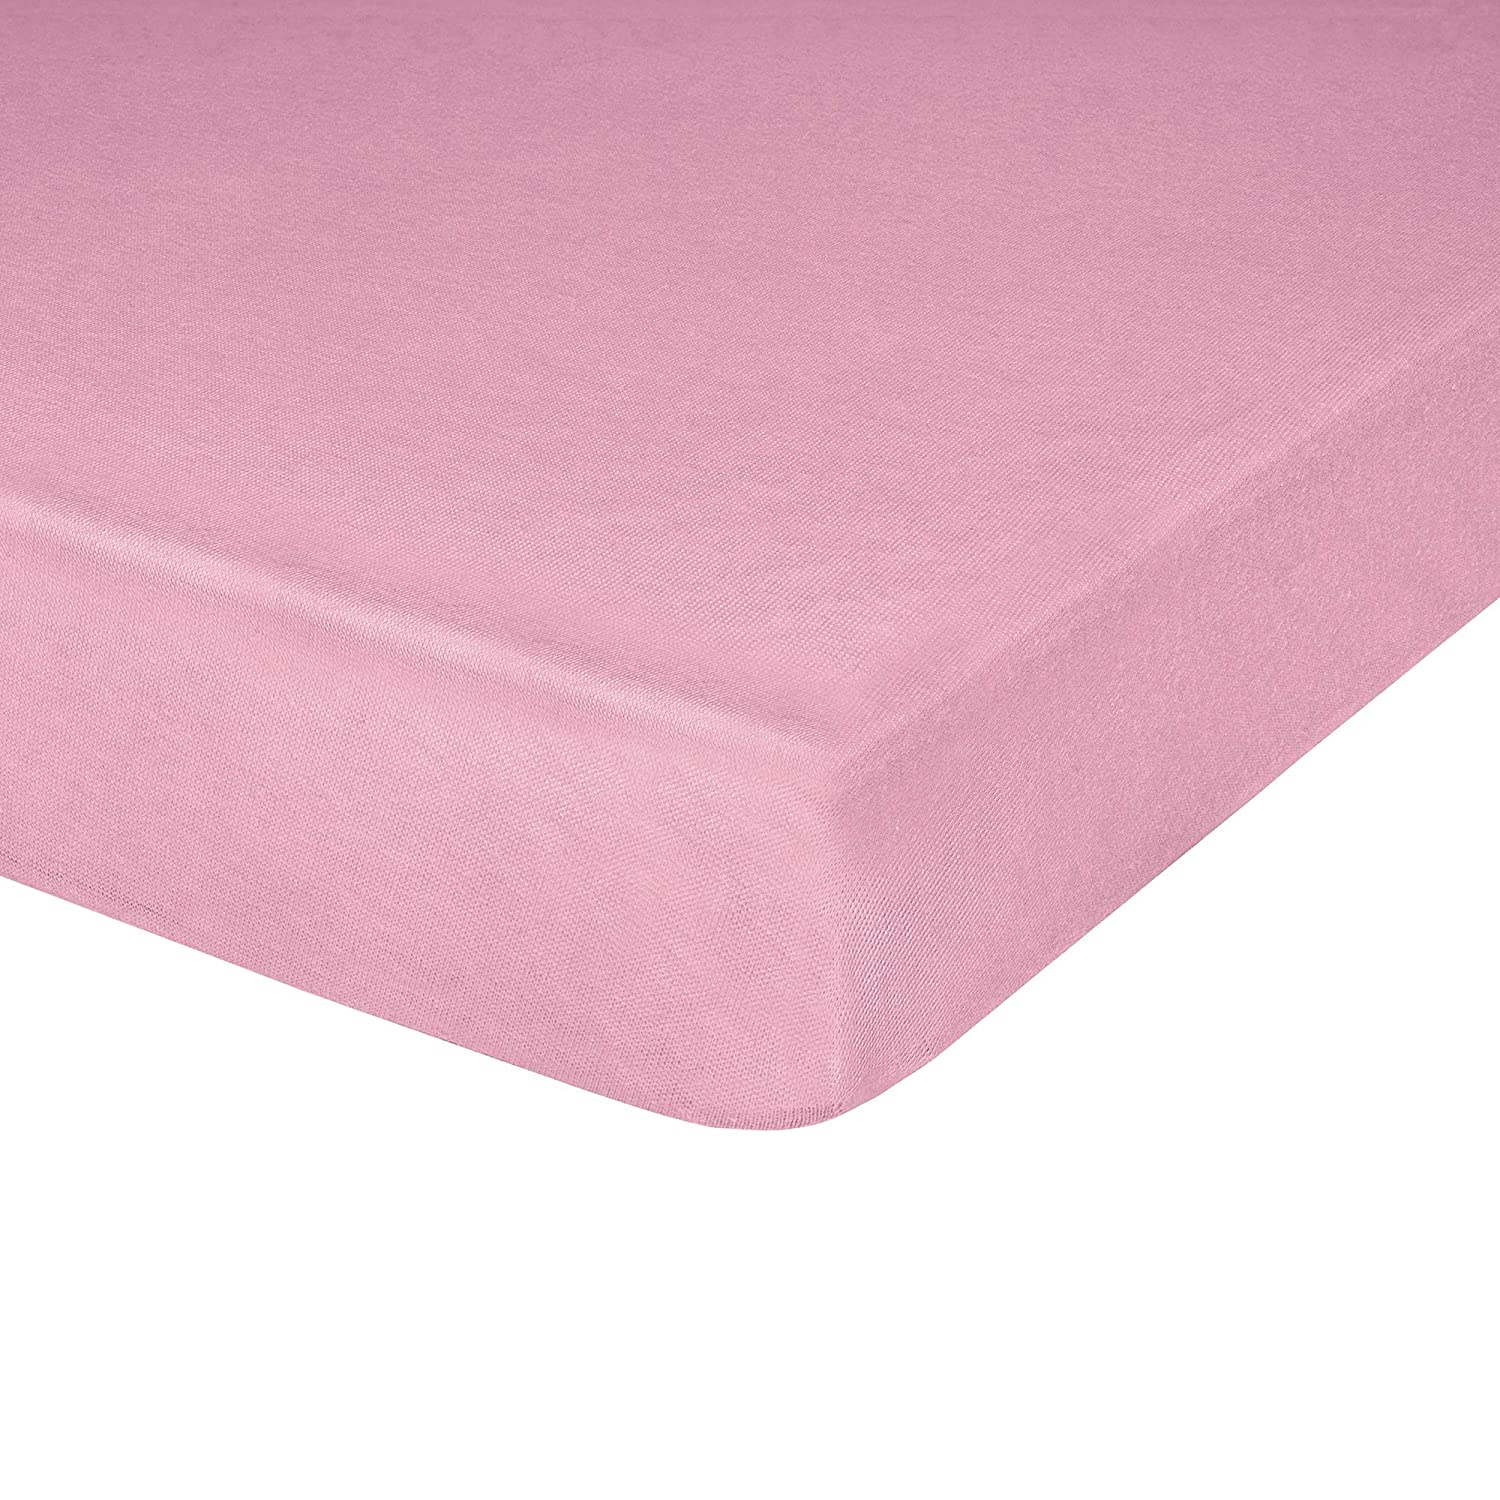 """Jersey Knit Crib Sheet with Fitted Stretch, Standard Baby and Toddler Mattress, 52"""" x 28"""" x 8"""", Pink, Pack of 1"""